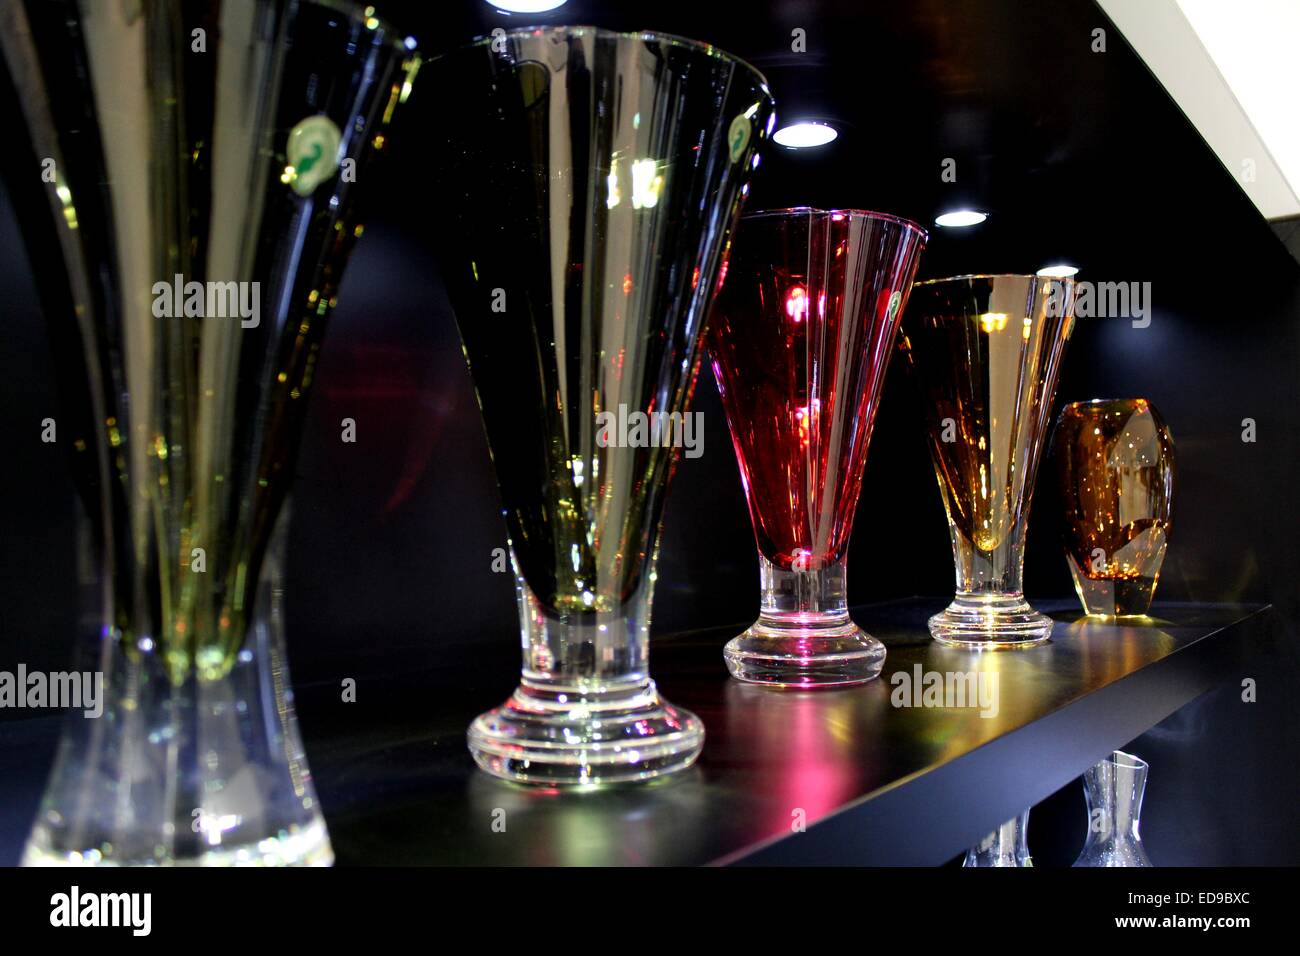 Beautiful glasses on display at Waterford Crystal headquarters in Ireland - Stock Image